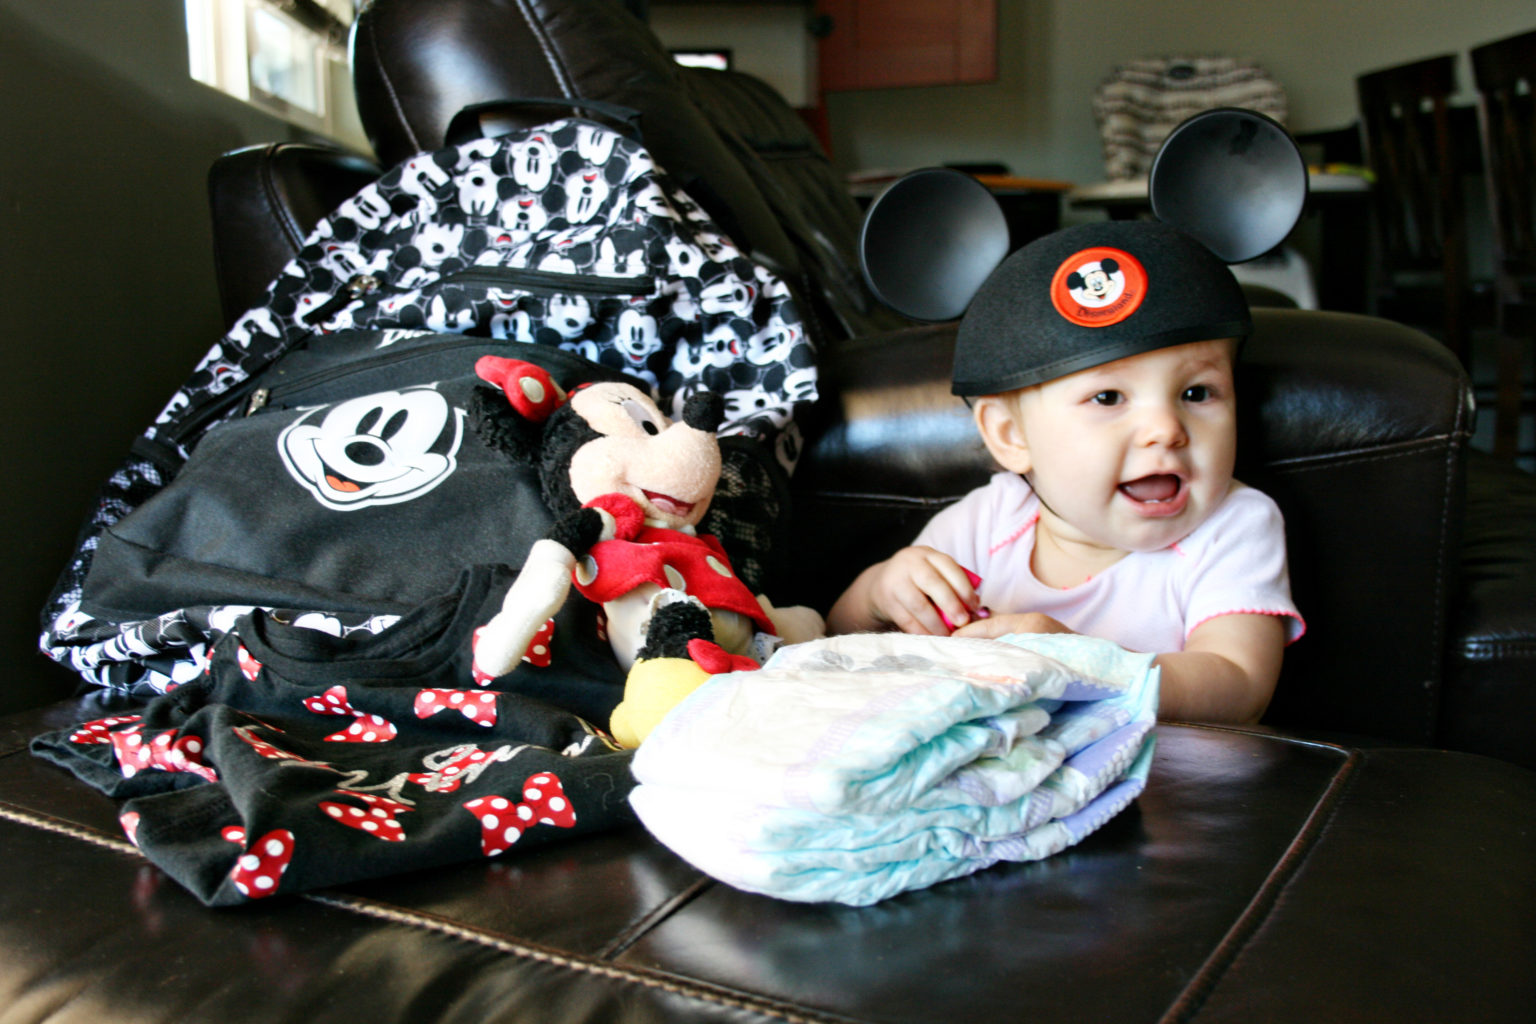 Disney parks travel bag for babies and toddlers with baby wearing Mickey ears - TravelingMom